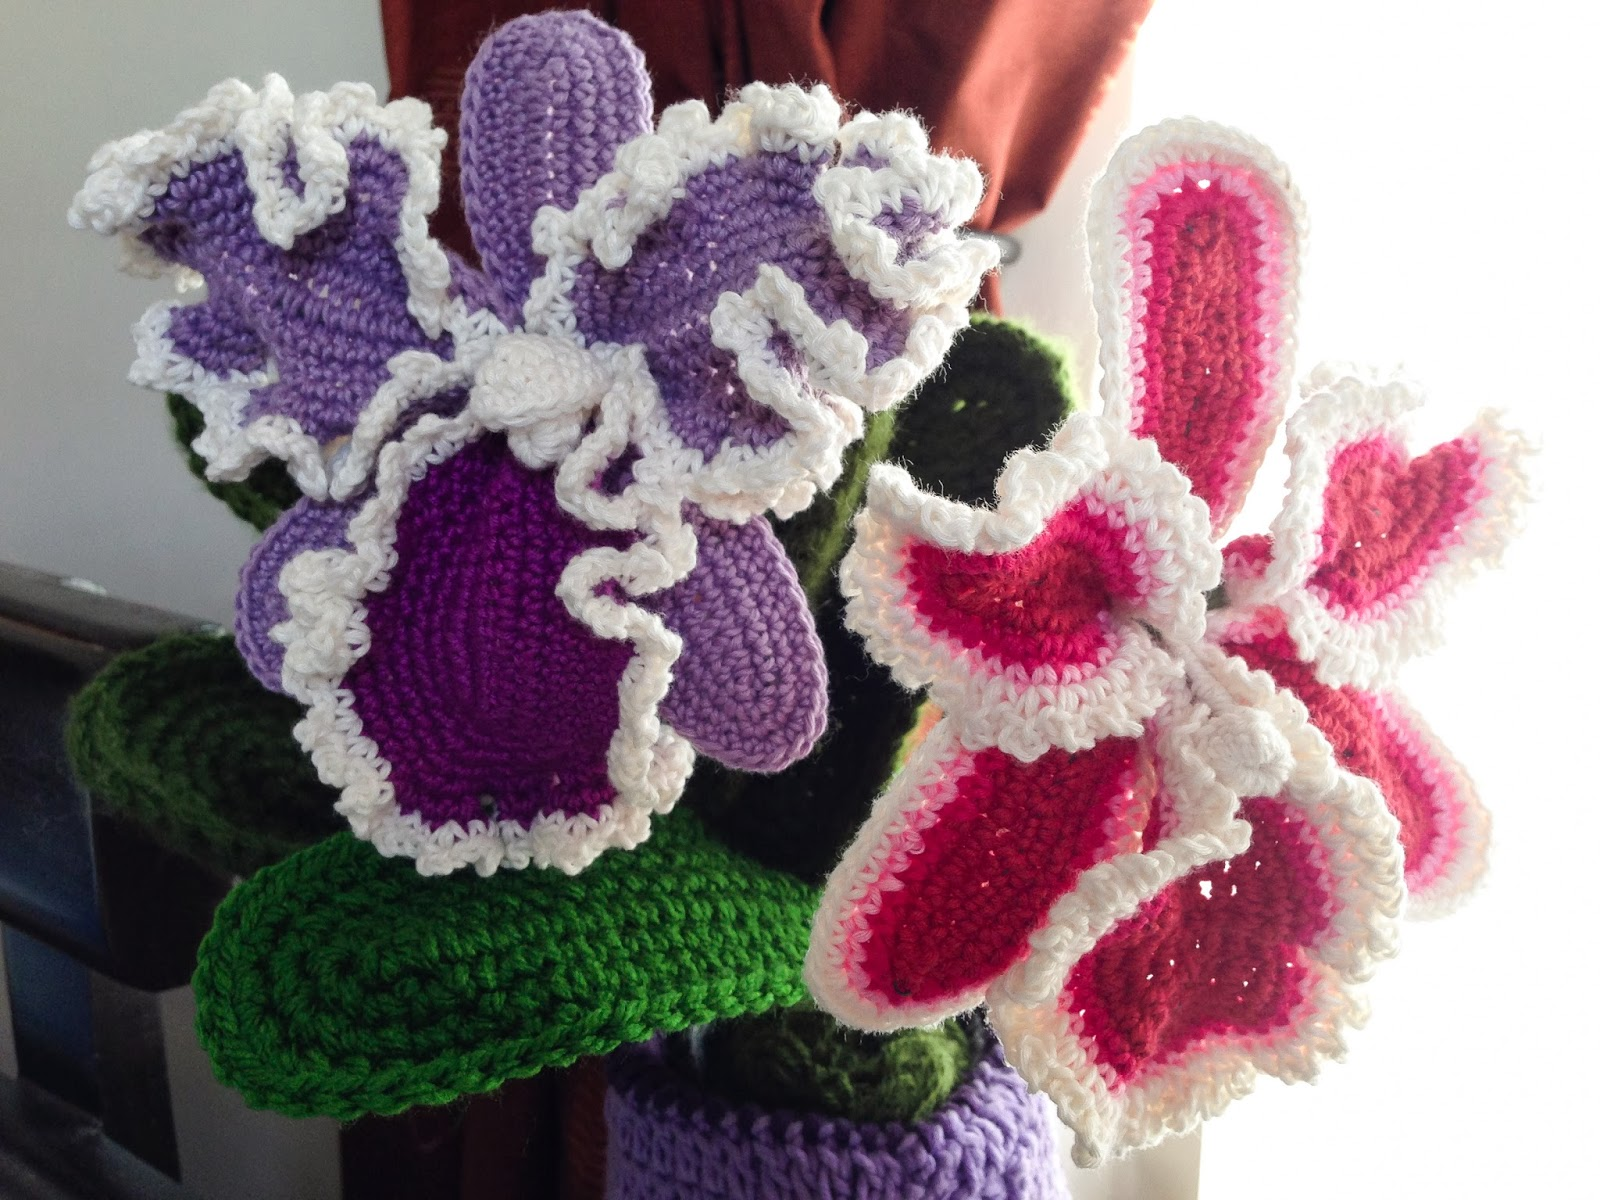 Free Crochet Pattern For Iris Flower : crochet rockstar: Cattleya Orchid Crochet Flower